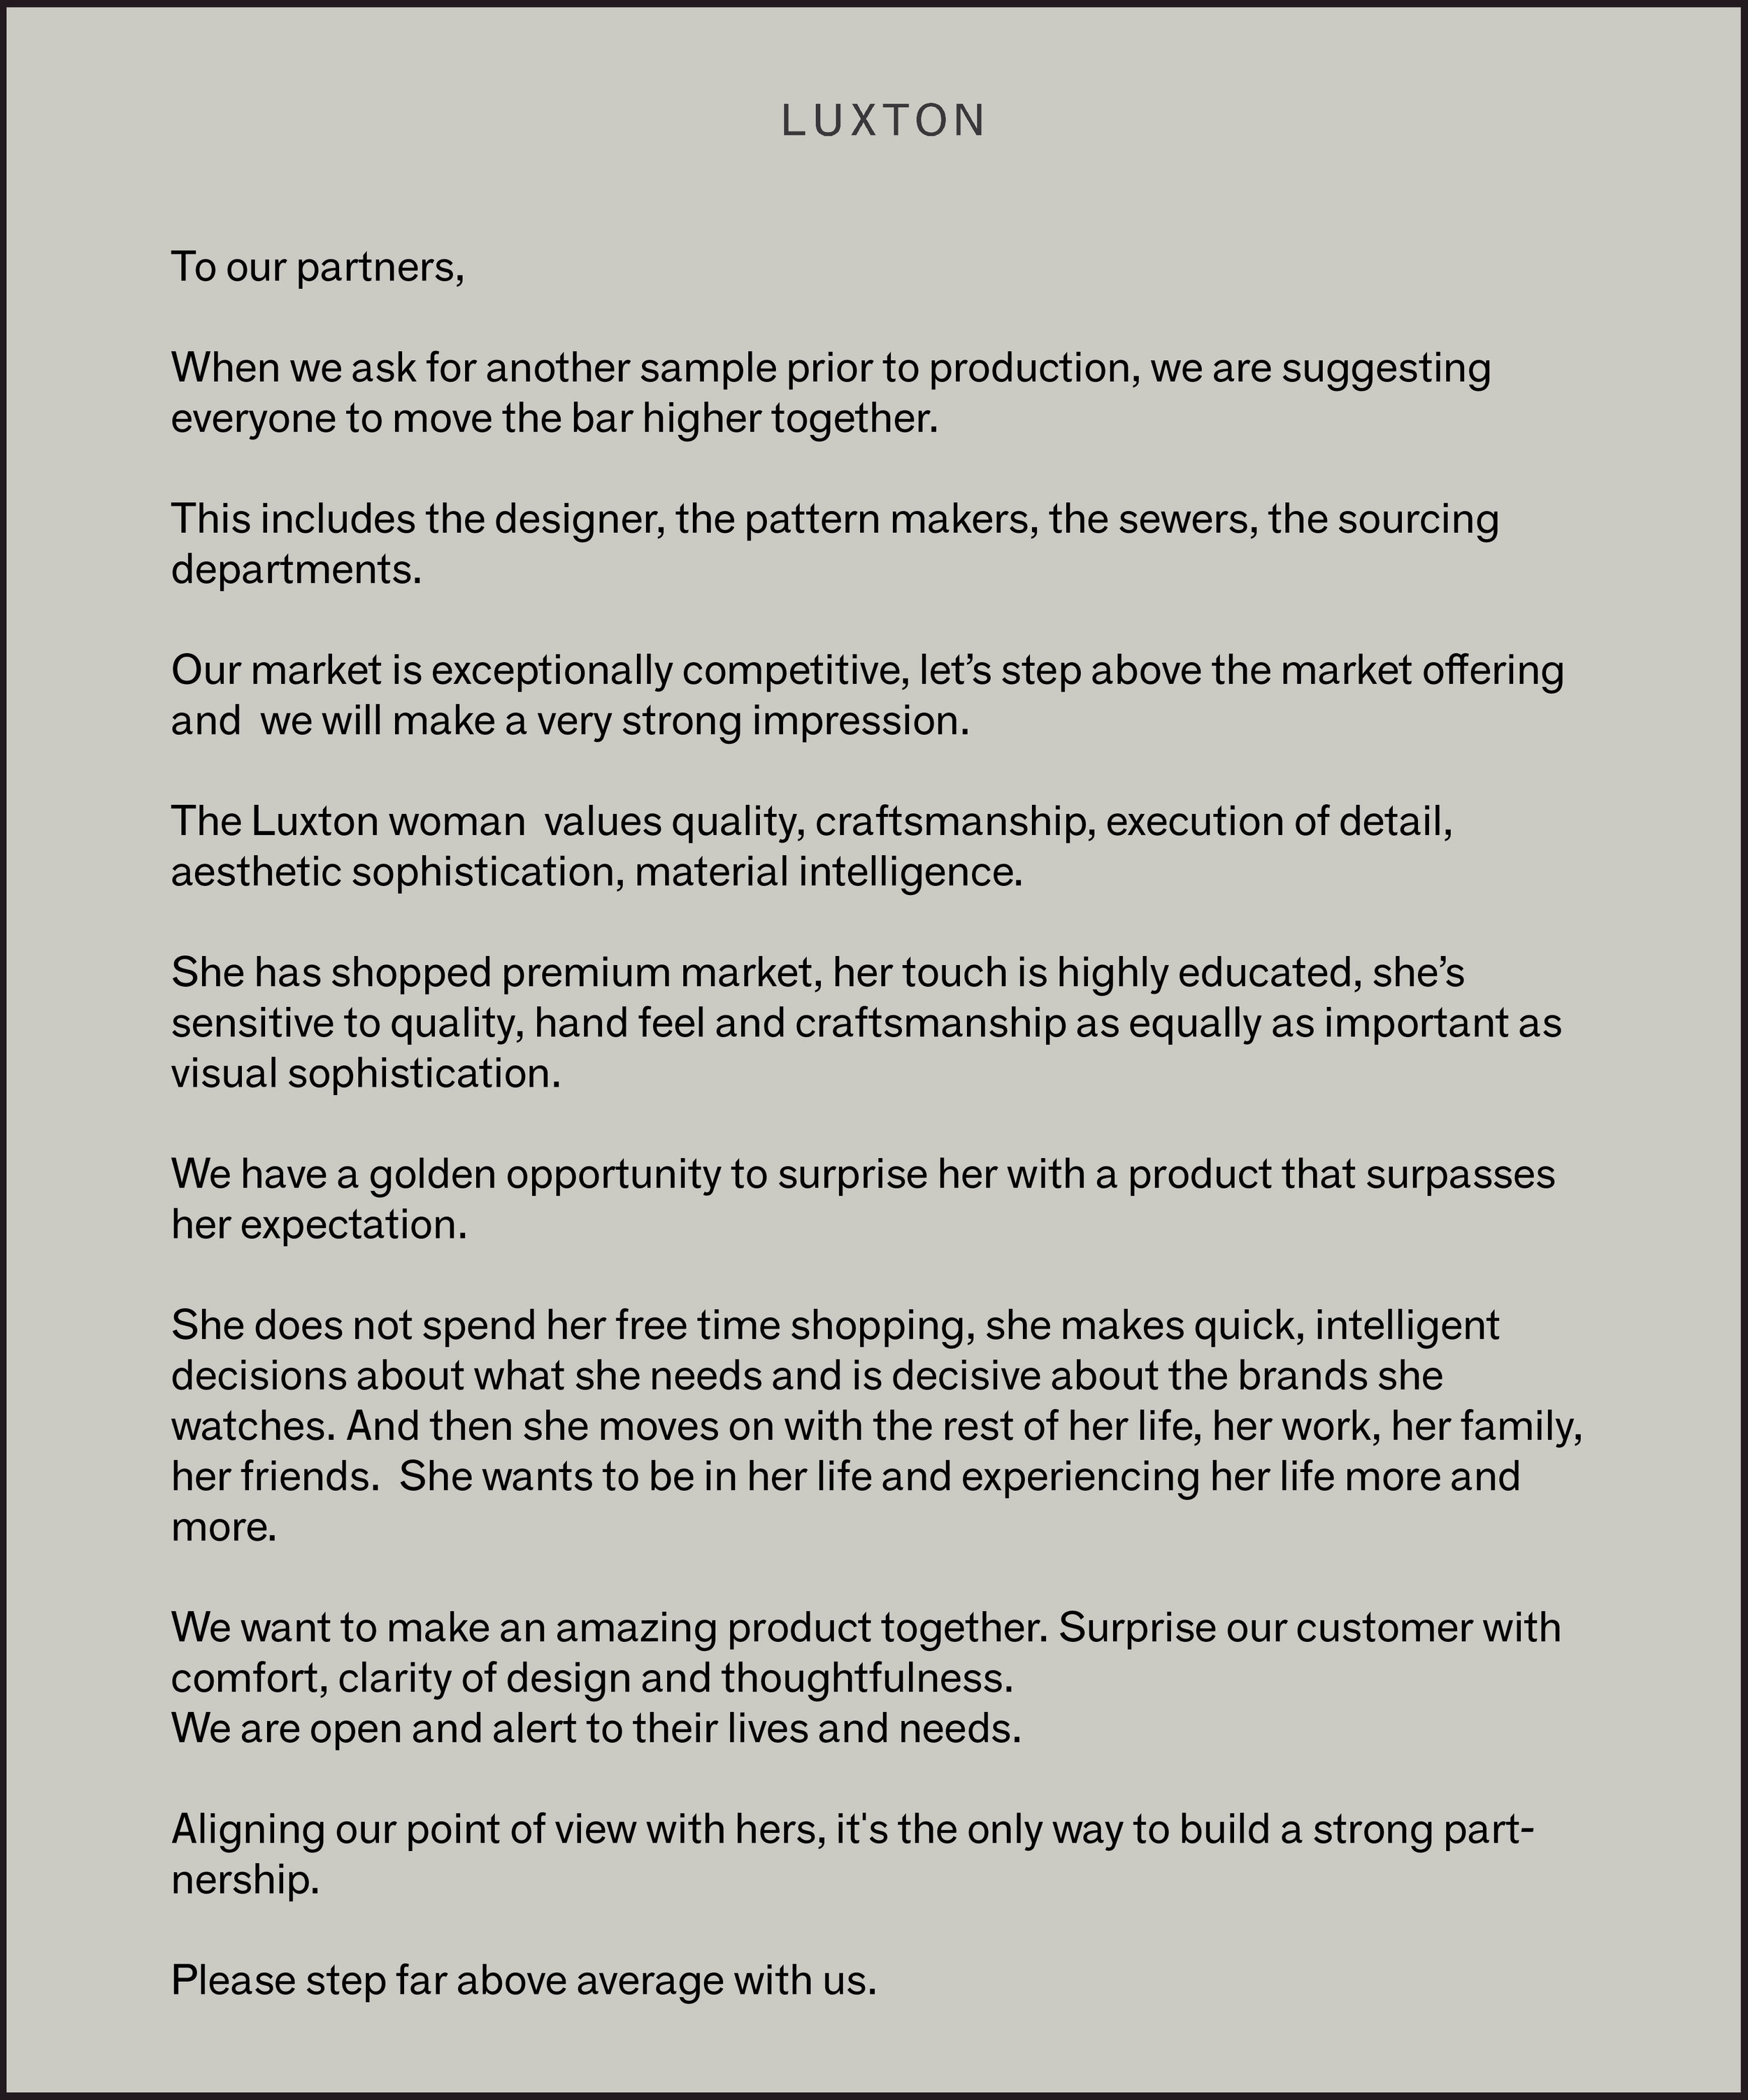 Luxton Letter To Partners-01.jpg